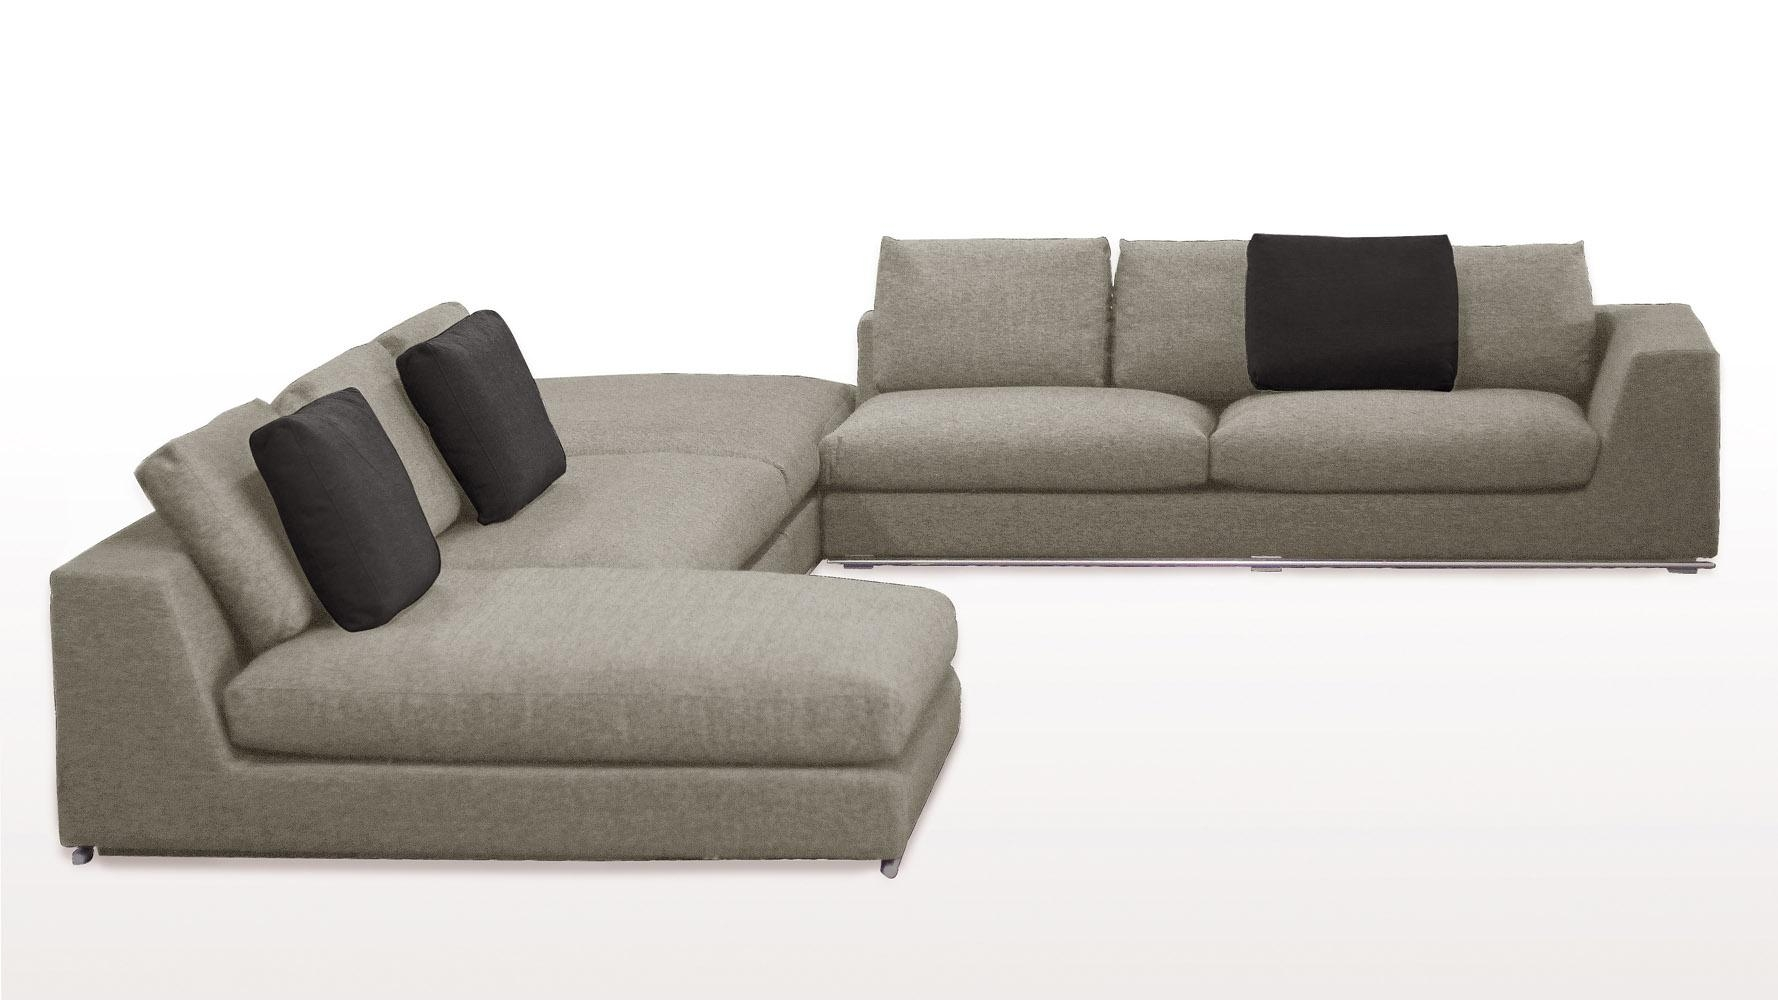 Comodo Sectional Sofa With Ottoman – Grey | Zuri Furniture For Goose Down Sectional Sofa (Image 2 of 15)